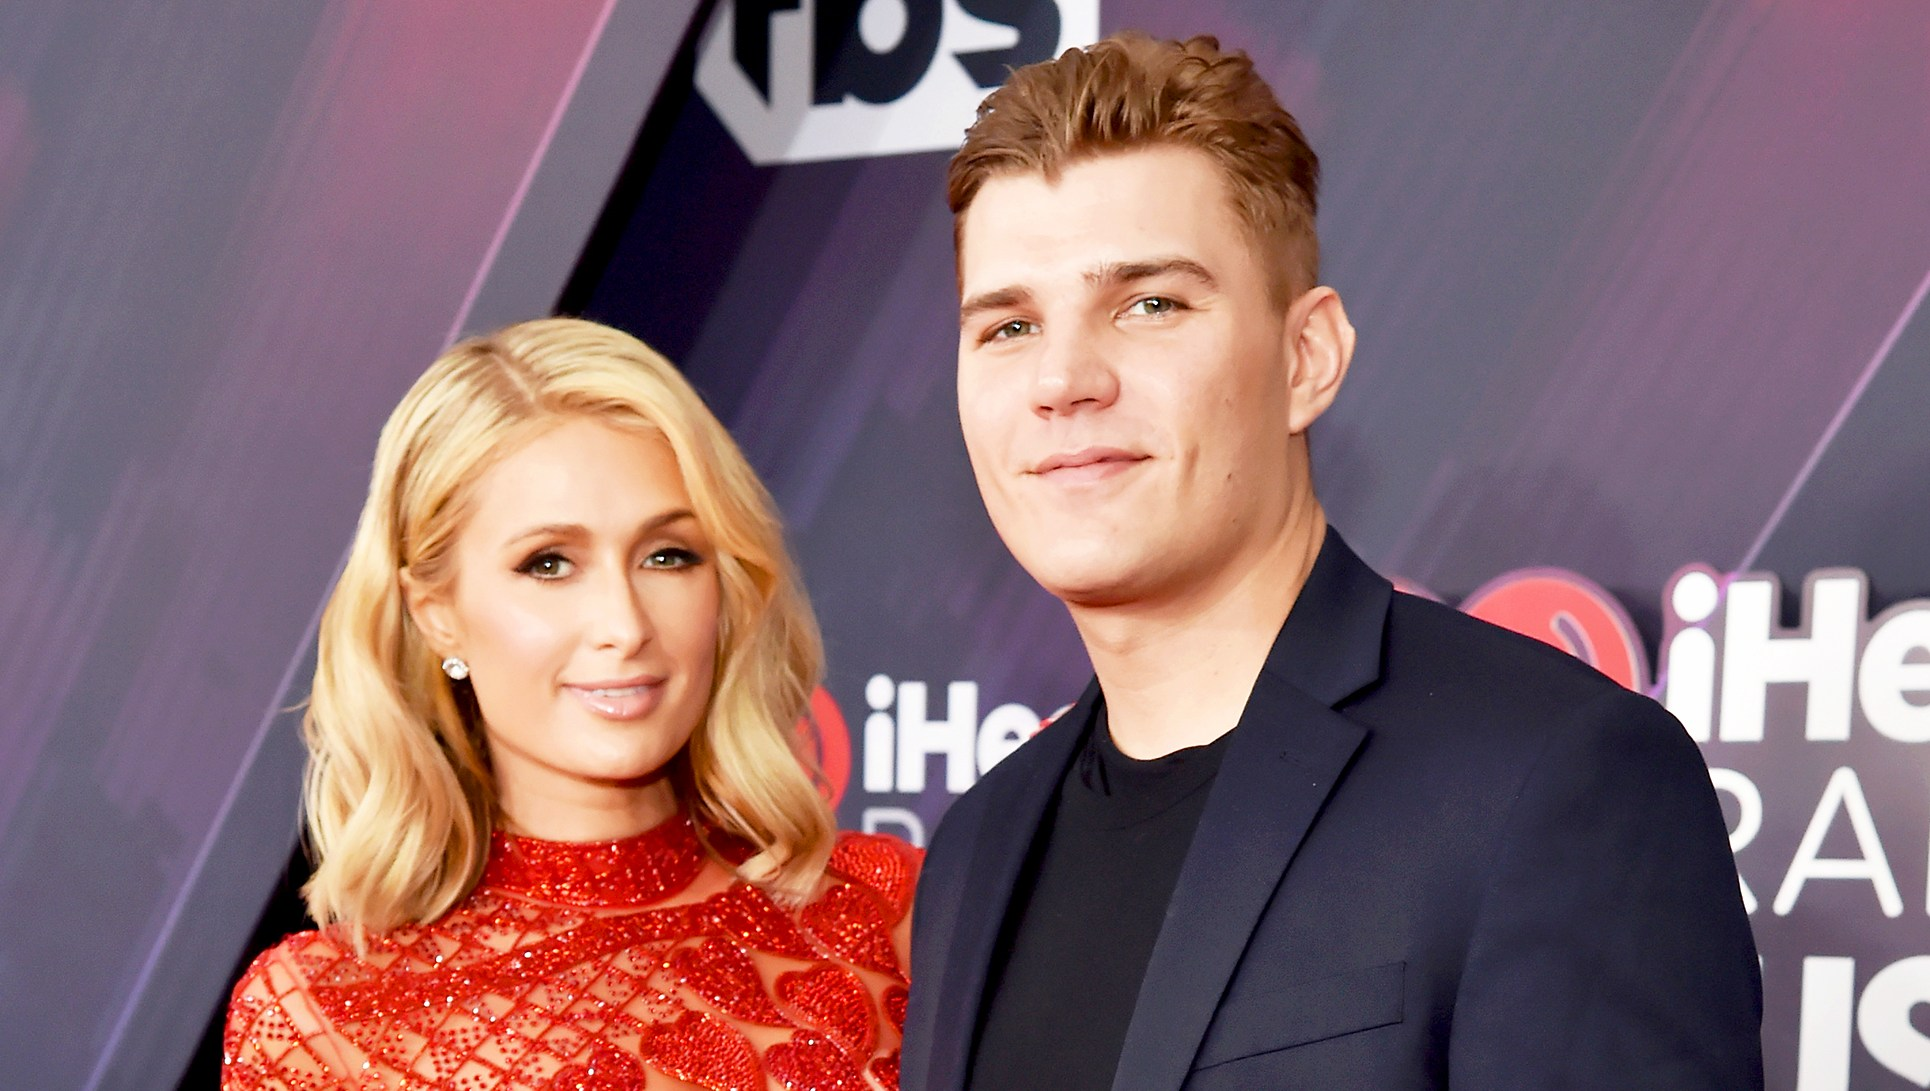 Paris Hilton and Chris Zylka arrive at the 2018 iHeartRadio Music Awards at The Forum in Inglewood, California.